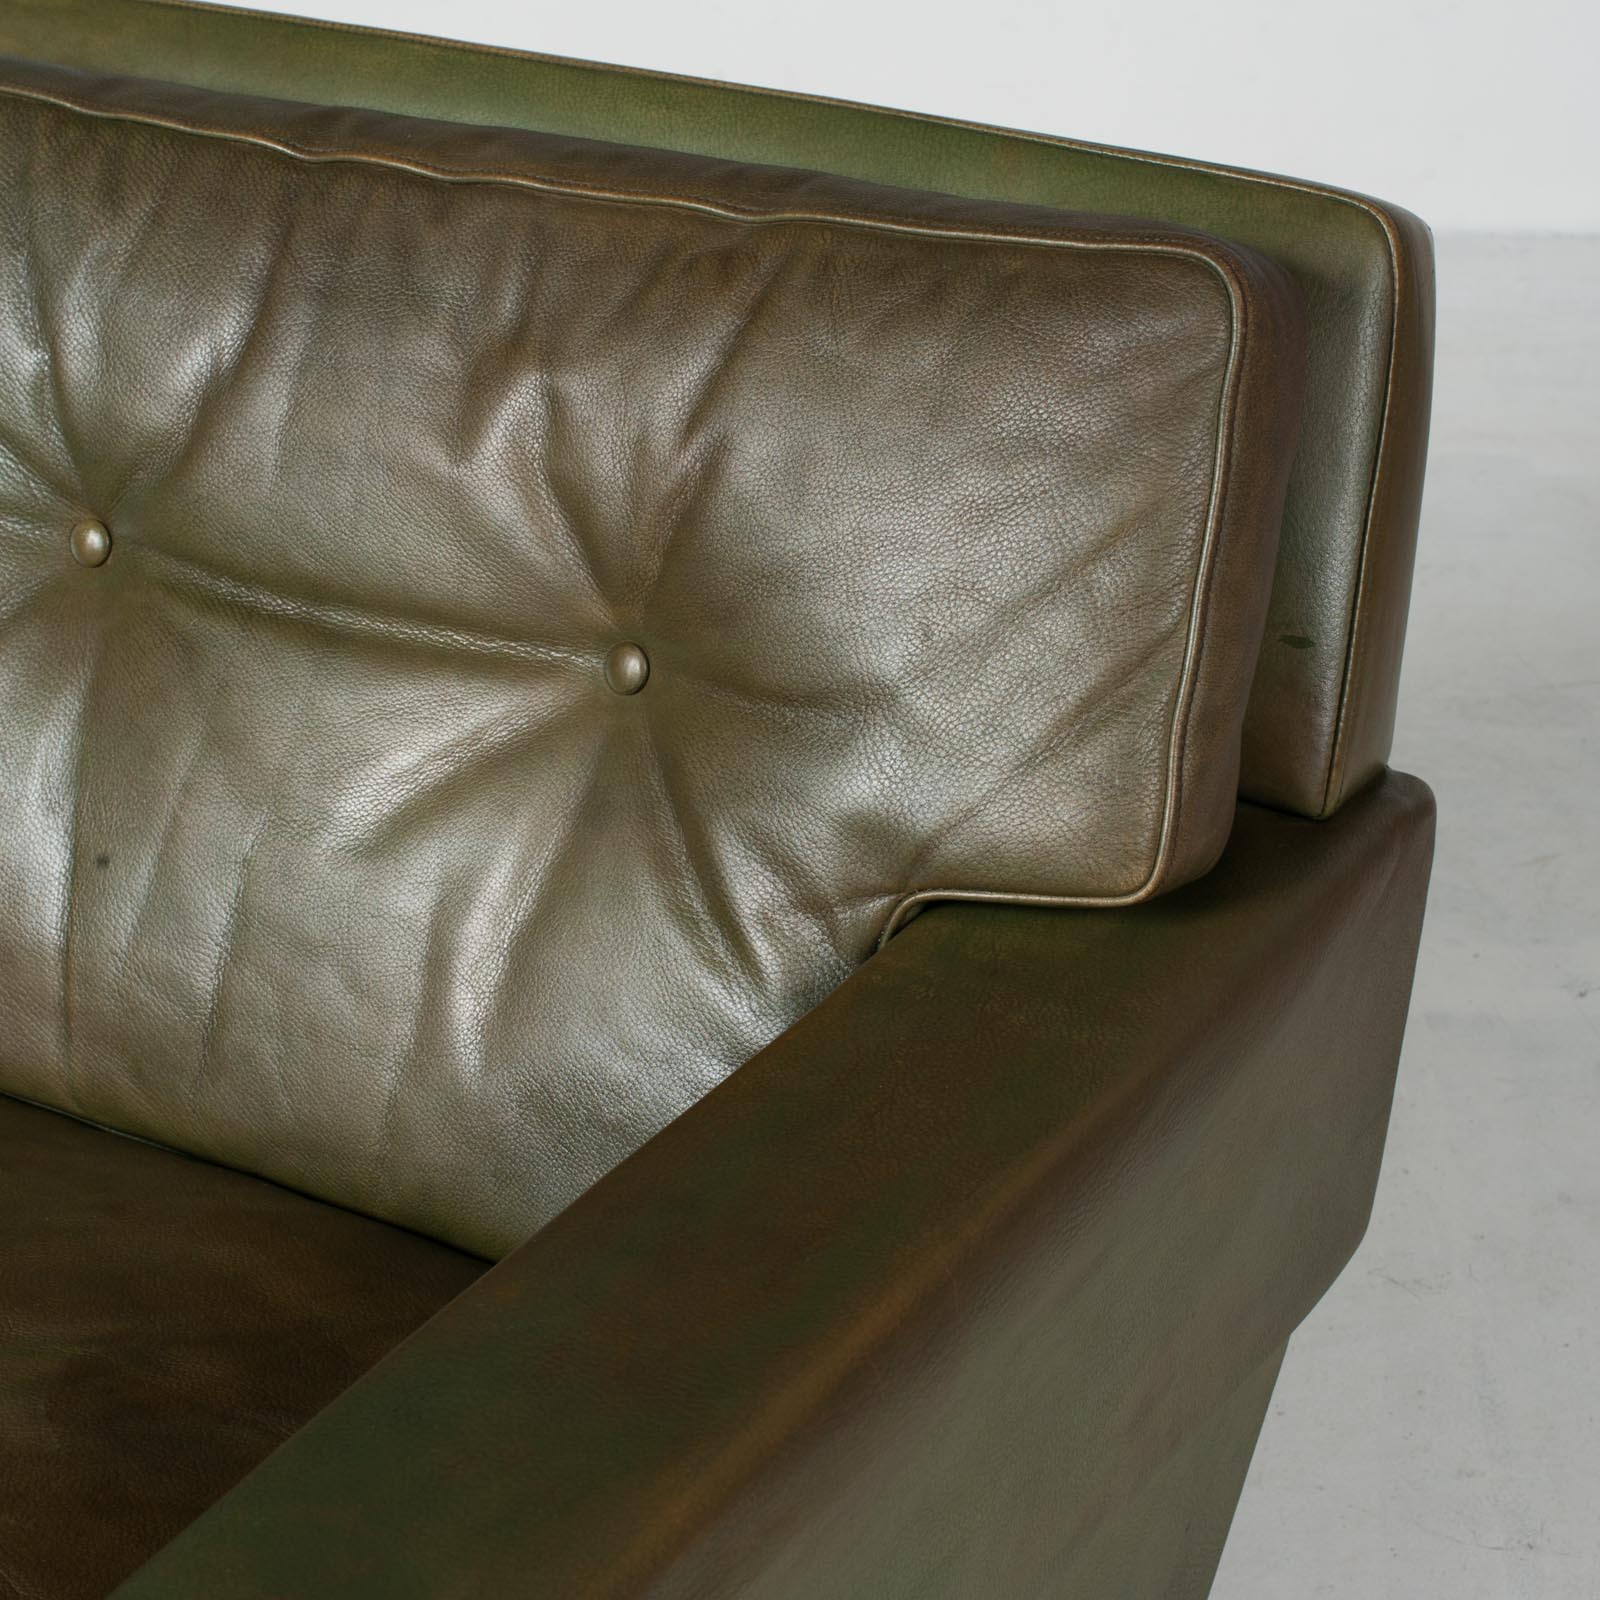 2 Armchairs In Olive Leather 1960s Denmark 006